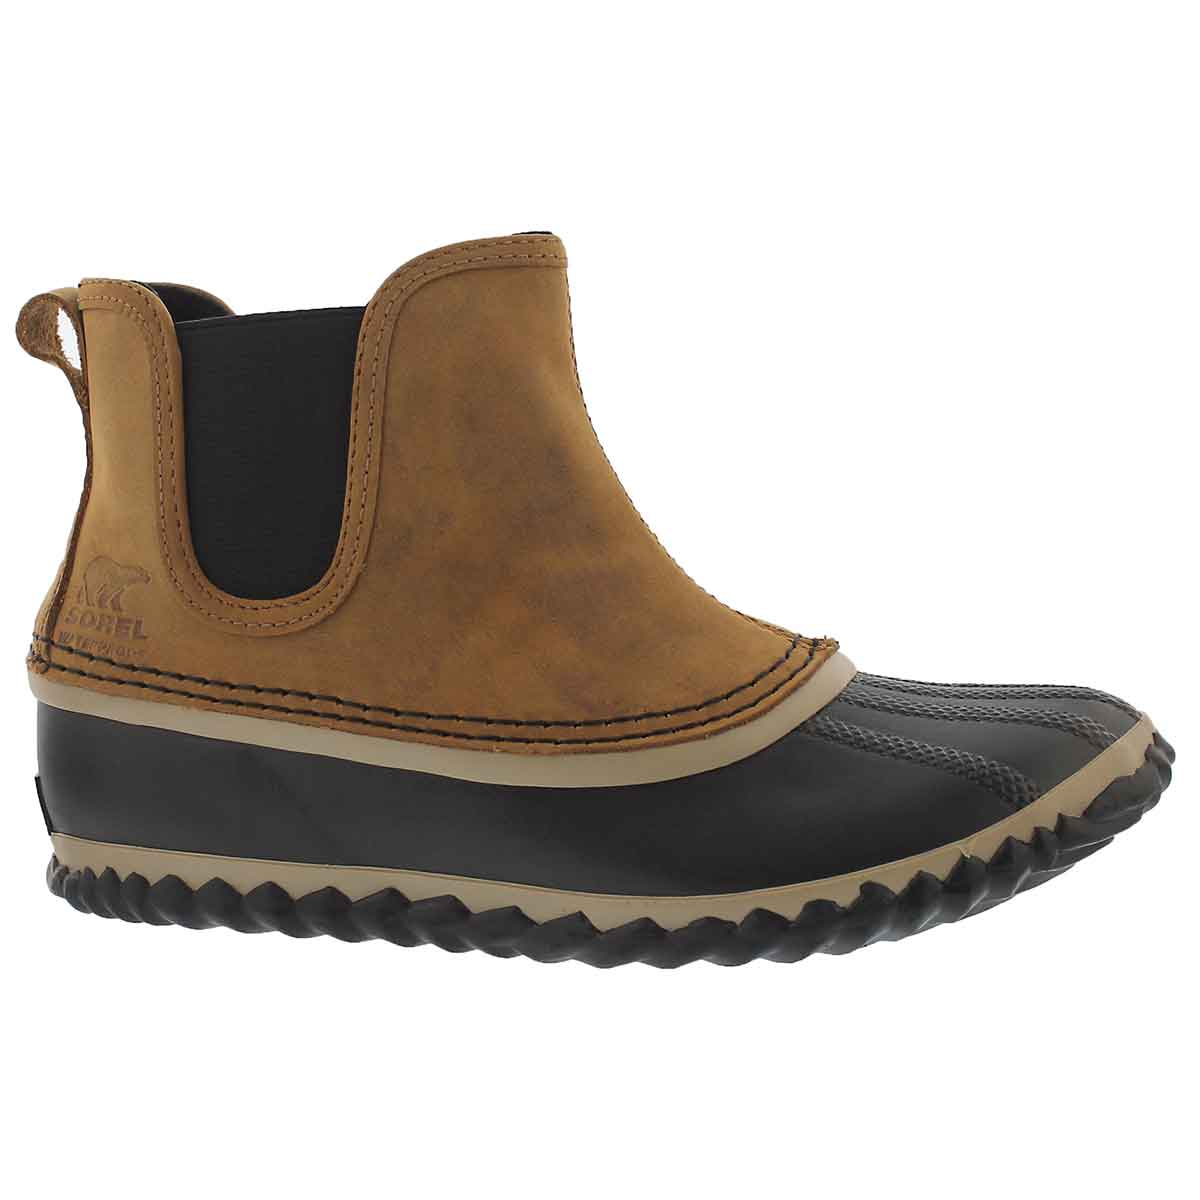 Lds Out'N About Chelsea elk duckie boot